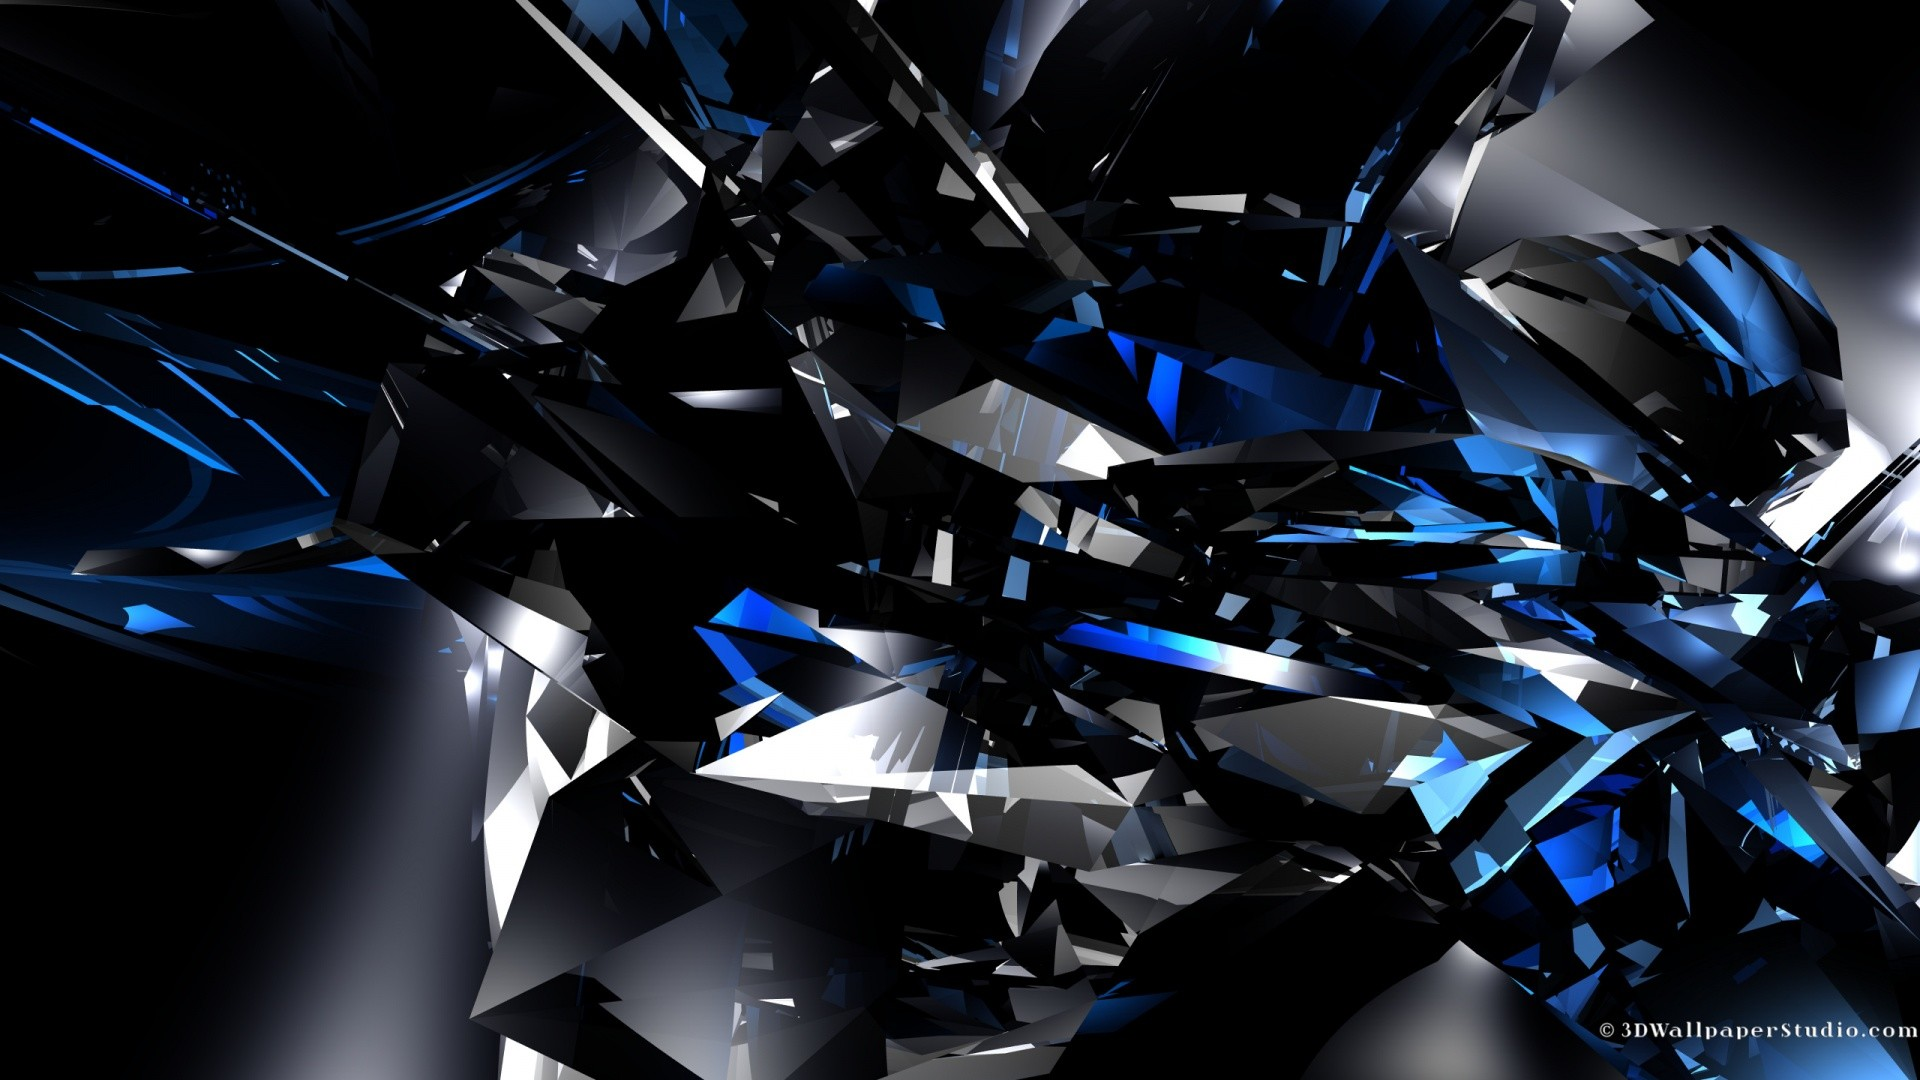 Hd 3d abstract wallpapers 1920x1080 64 images for 3d hd wallpapers